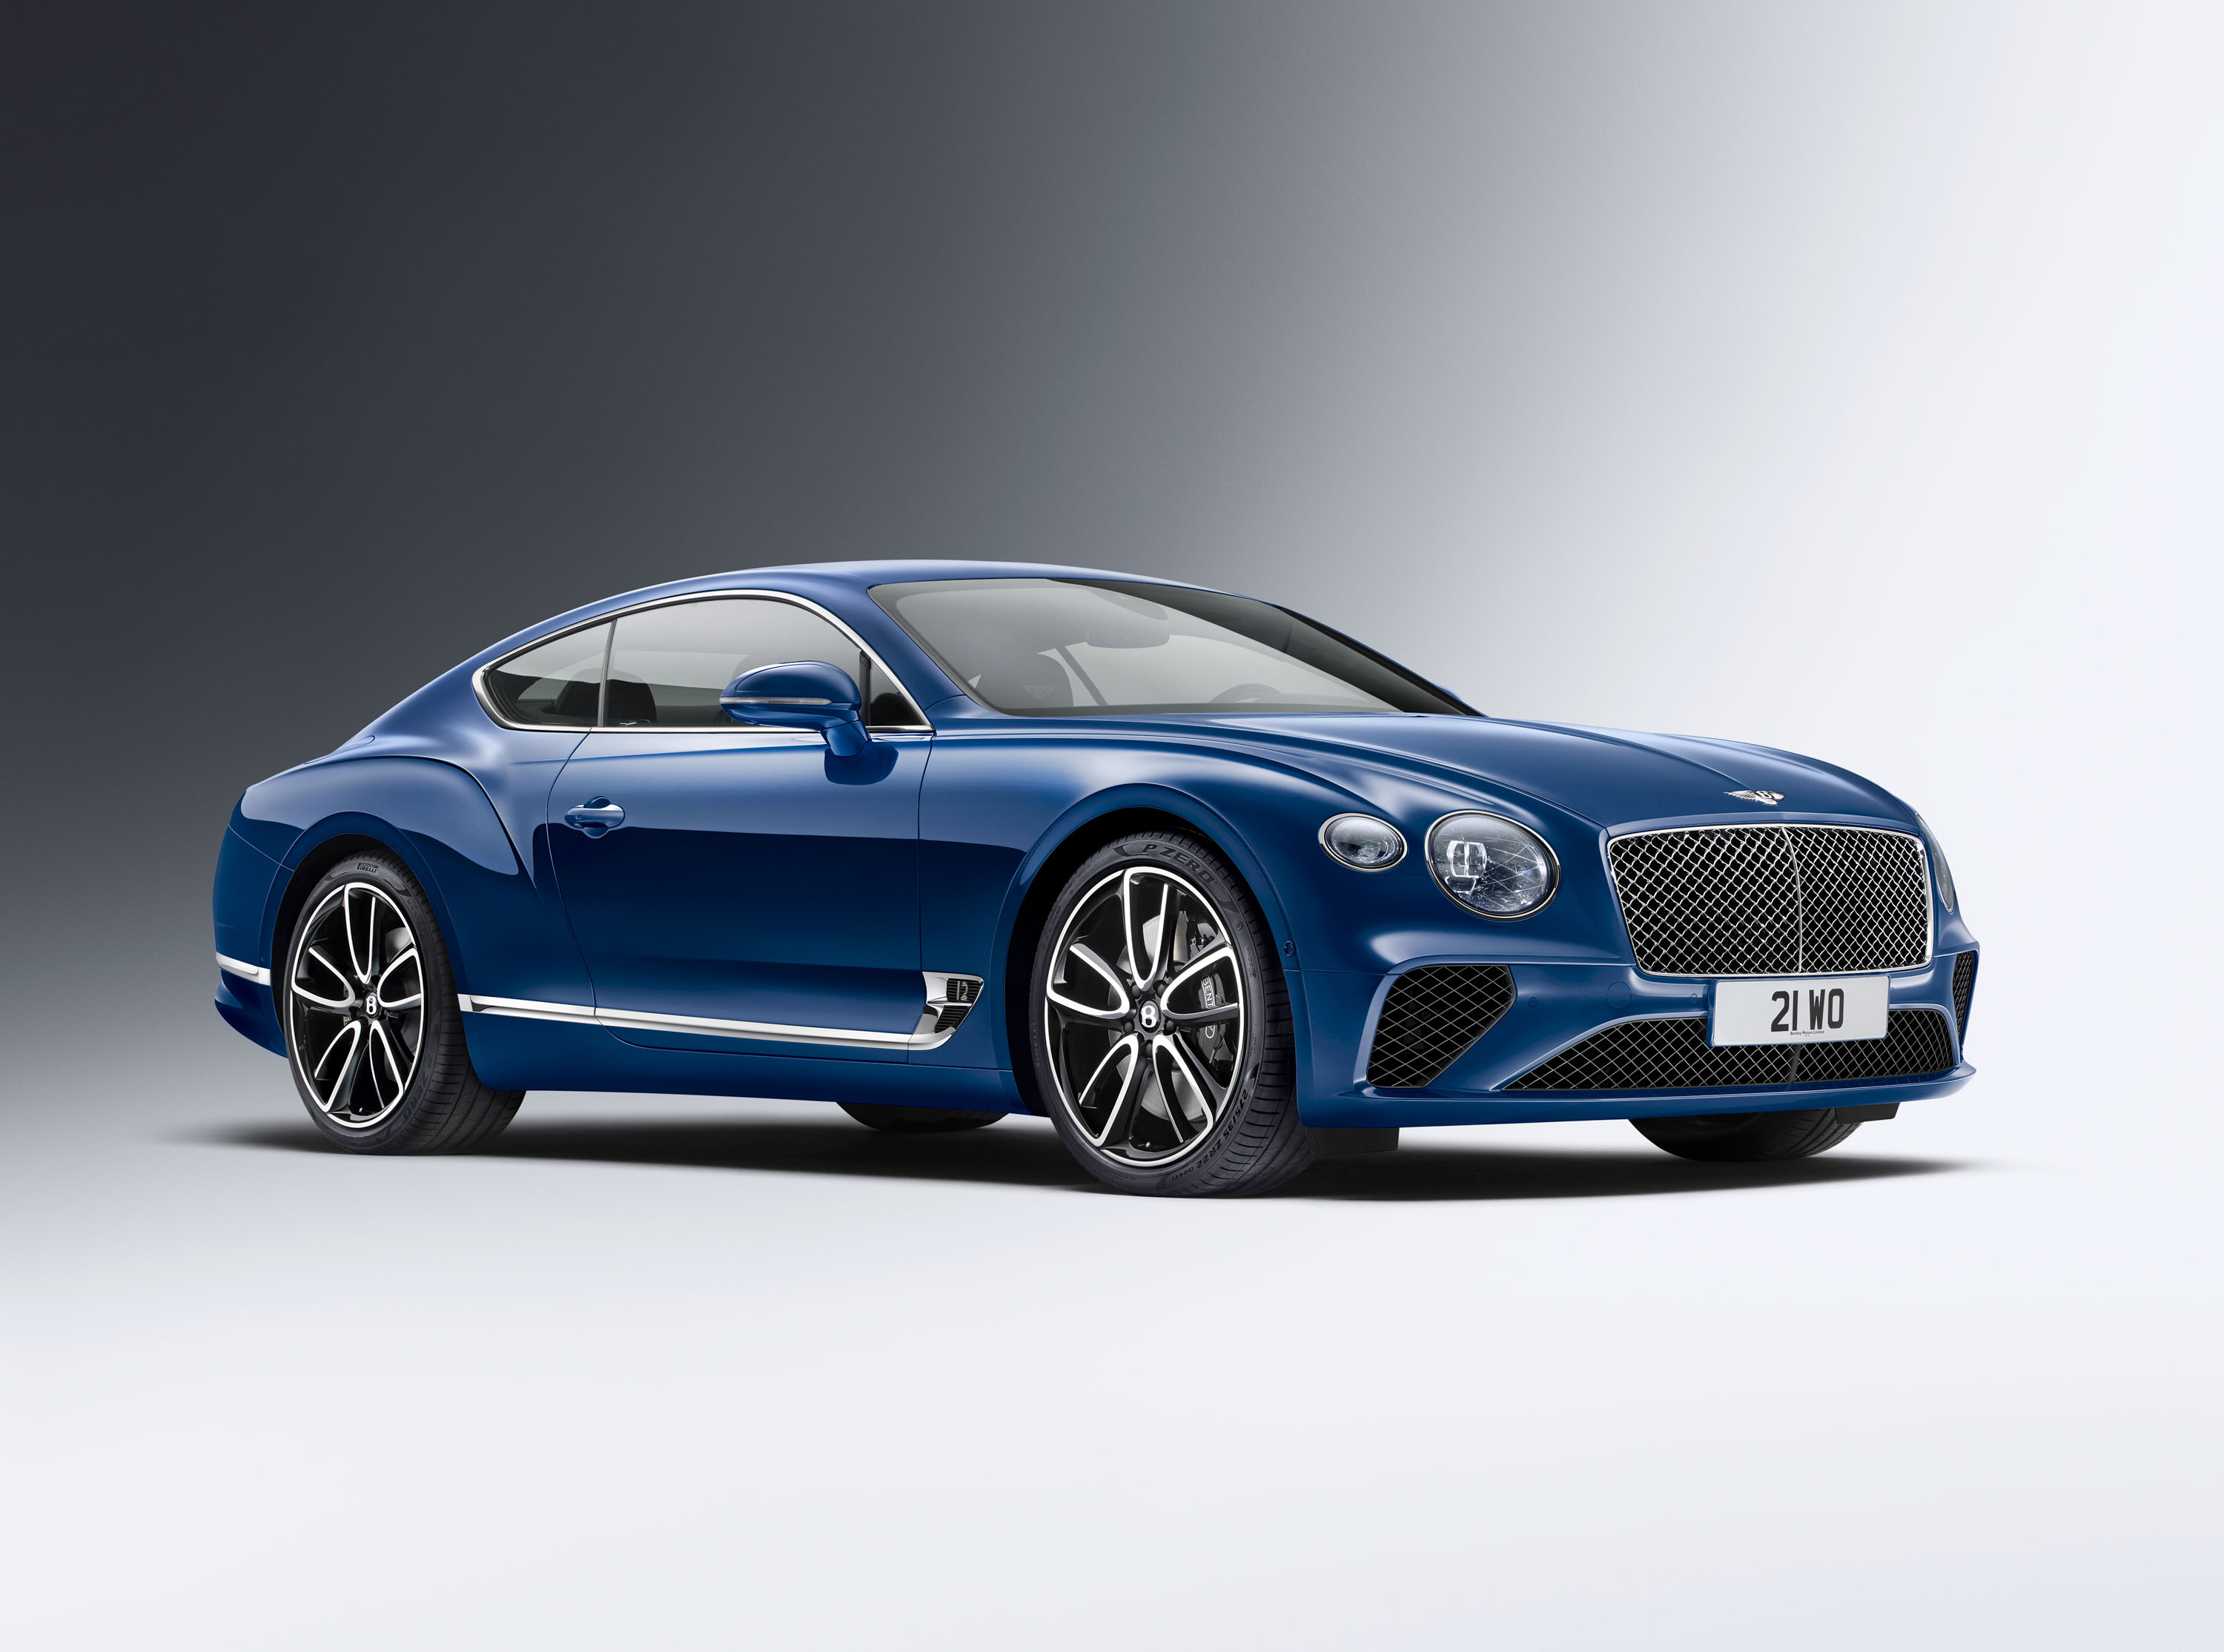 range bentley car a news arrived has front magazine new pictures price and bentayga hybrid first specs stately suv release date official phev geneva cars by of